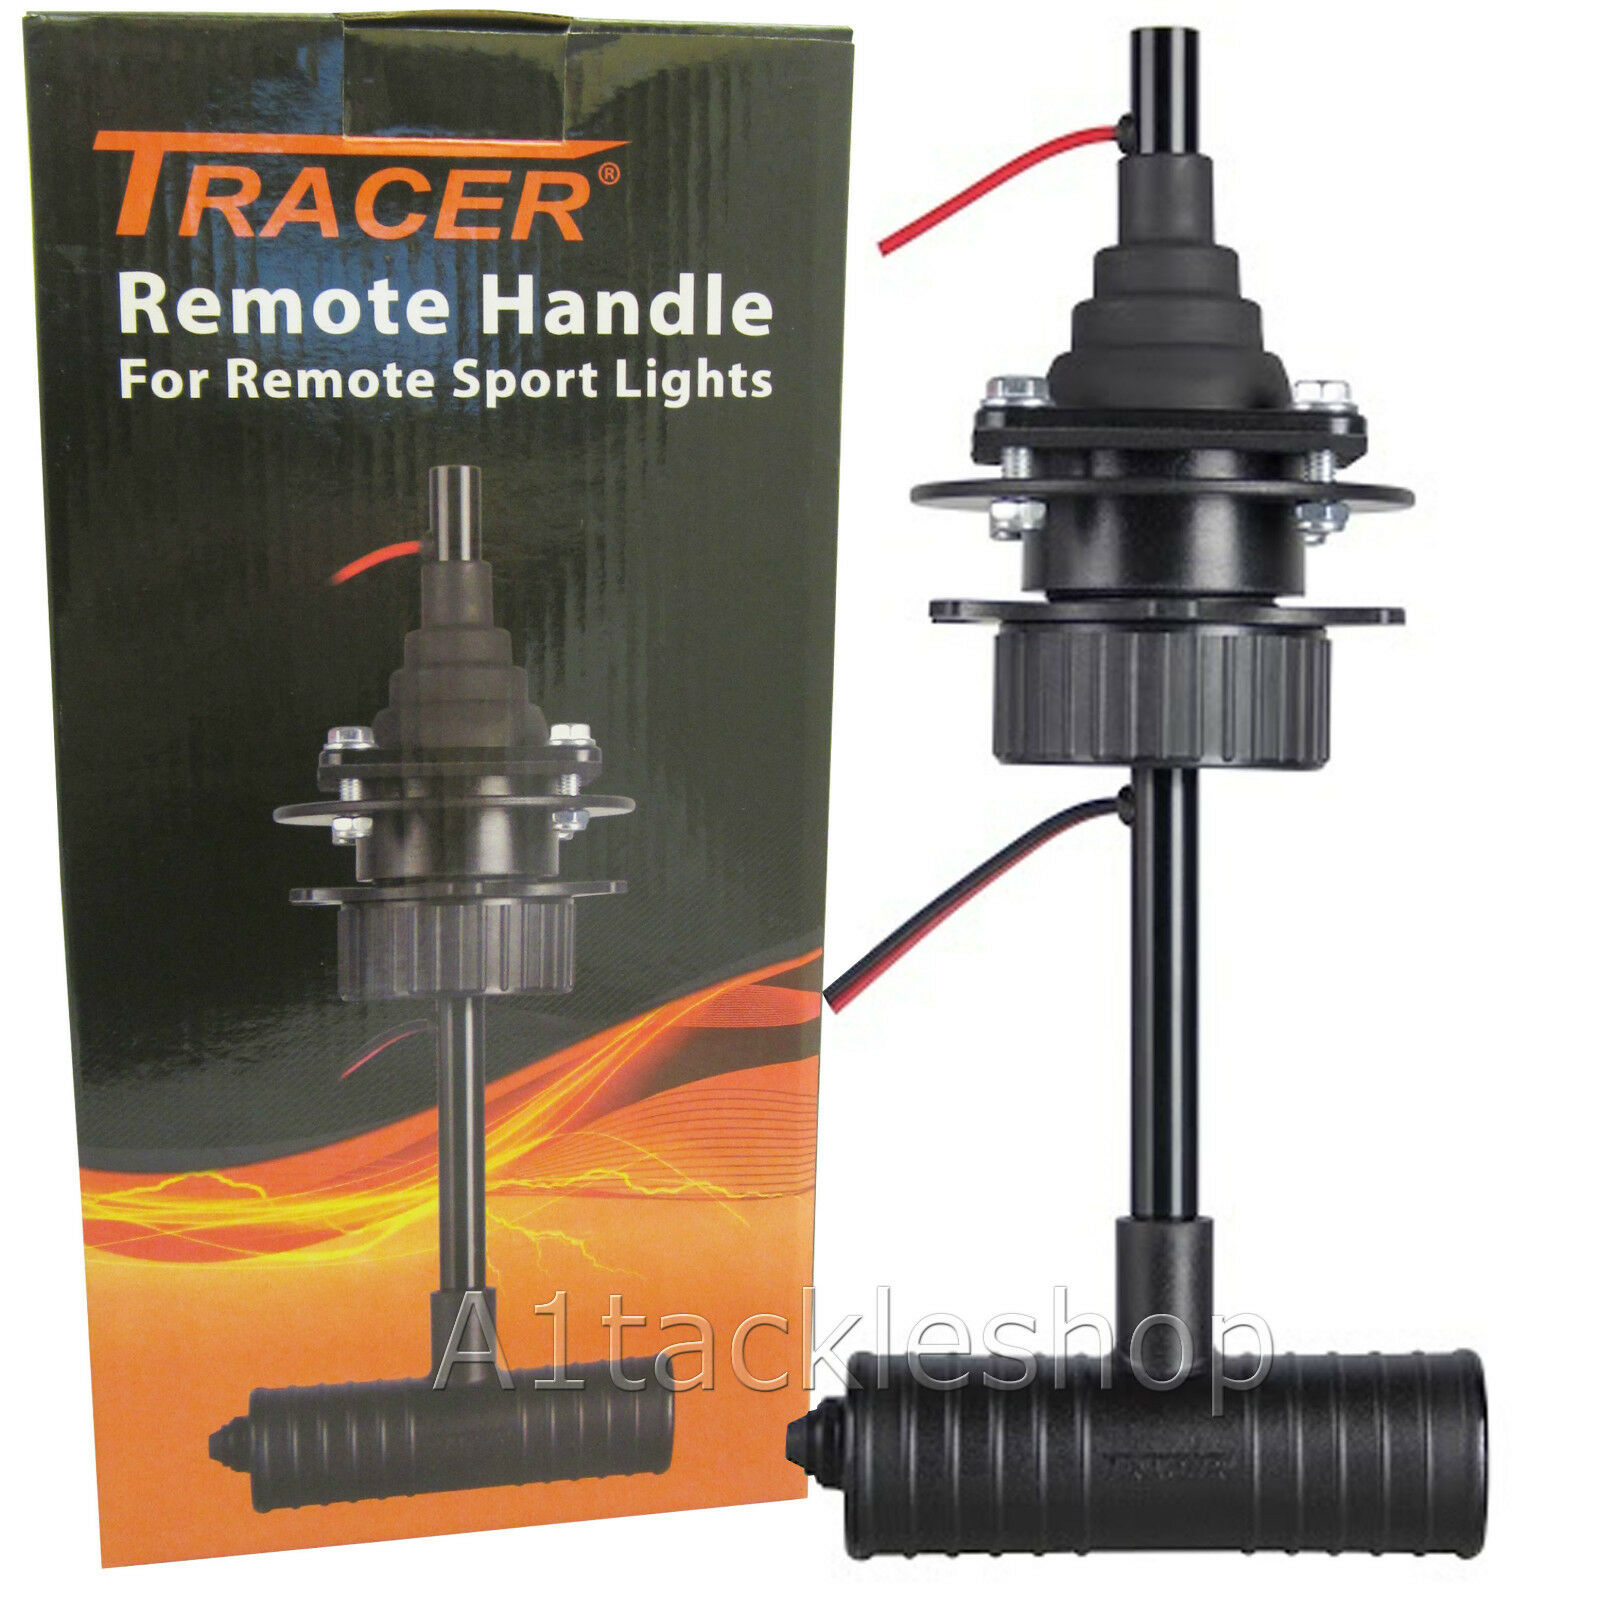 Deben Tracer Sport Light/Lamp Remote Mount Vehicle Handle - Fixed Power - TR7185